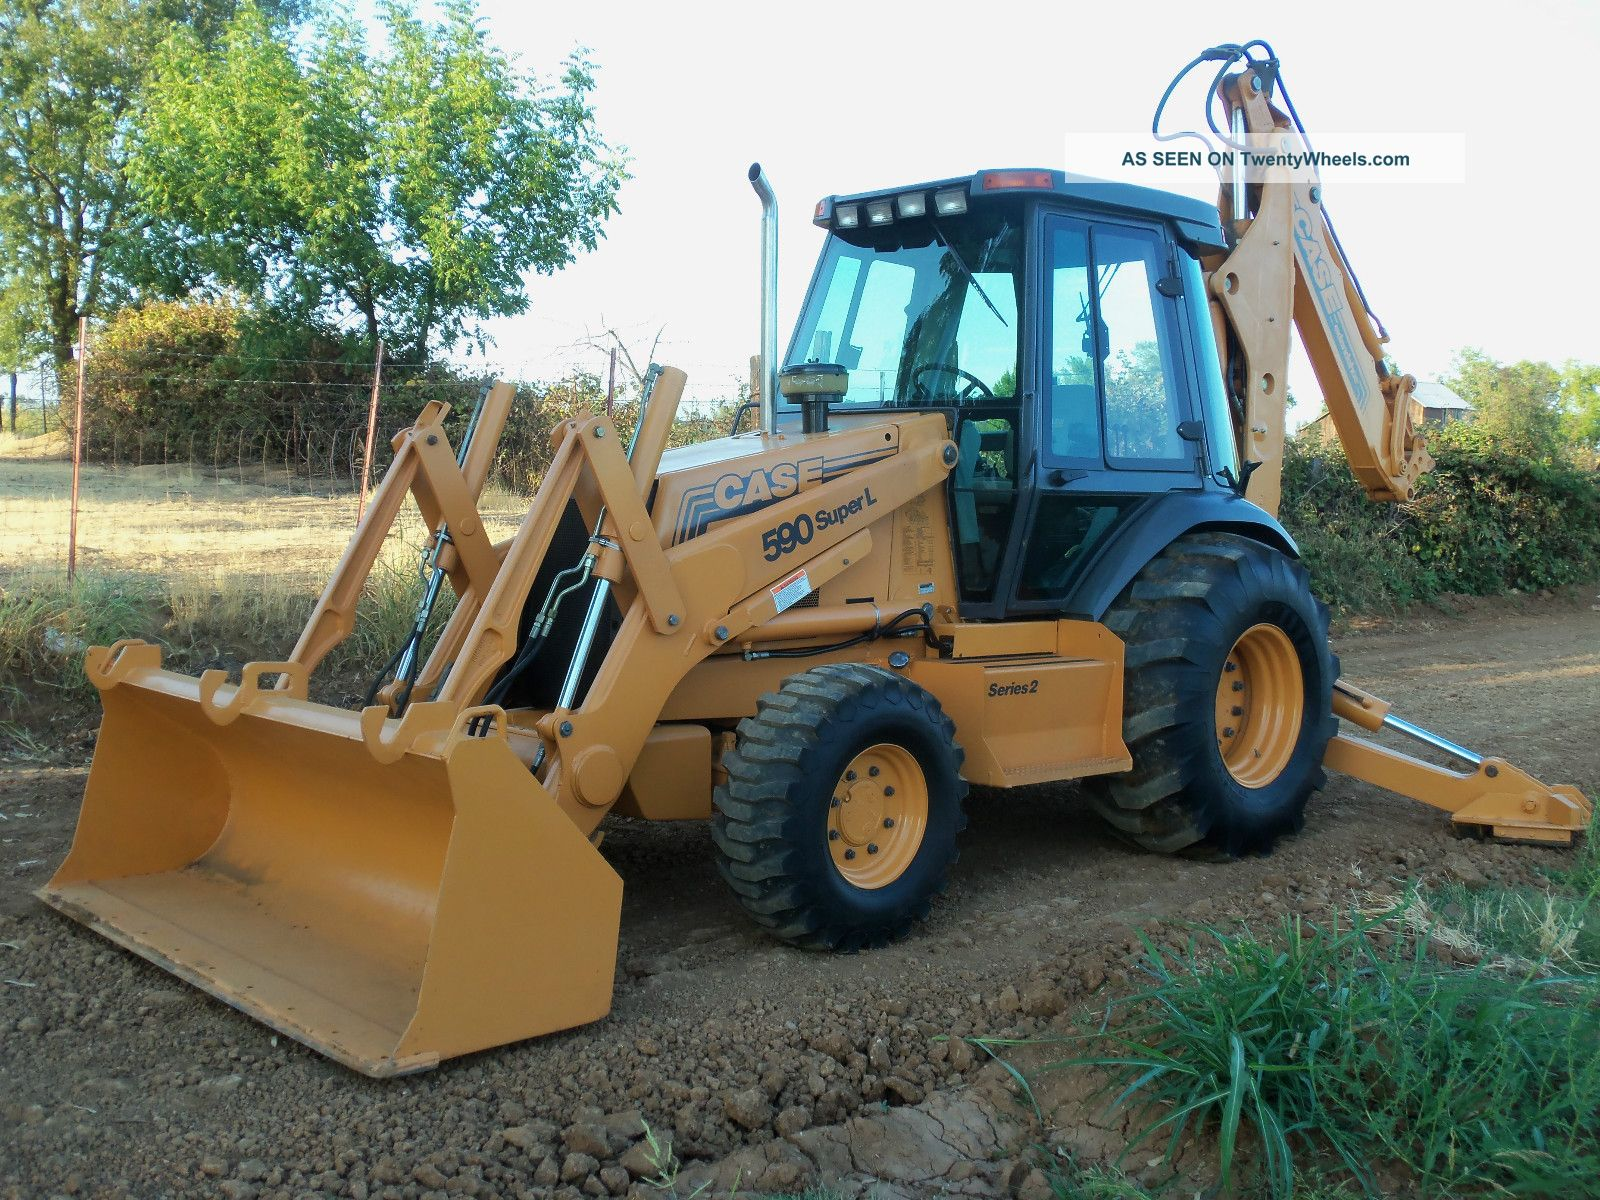 Case 590 L 4x4 Extendahoe Backhoe Loader Tractor Backhoe Loaders photo